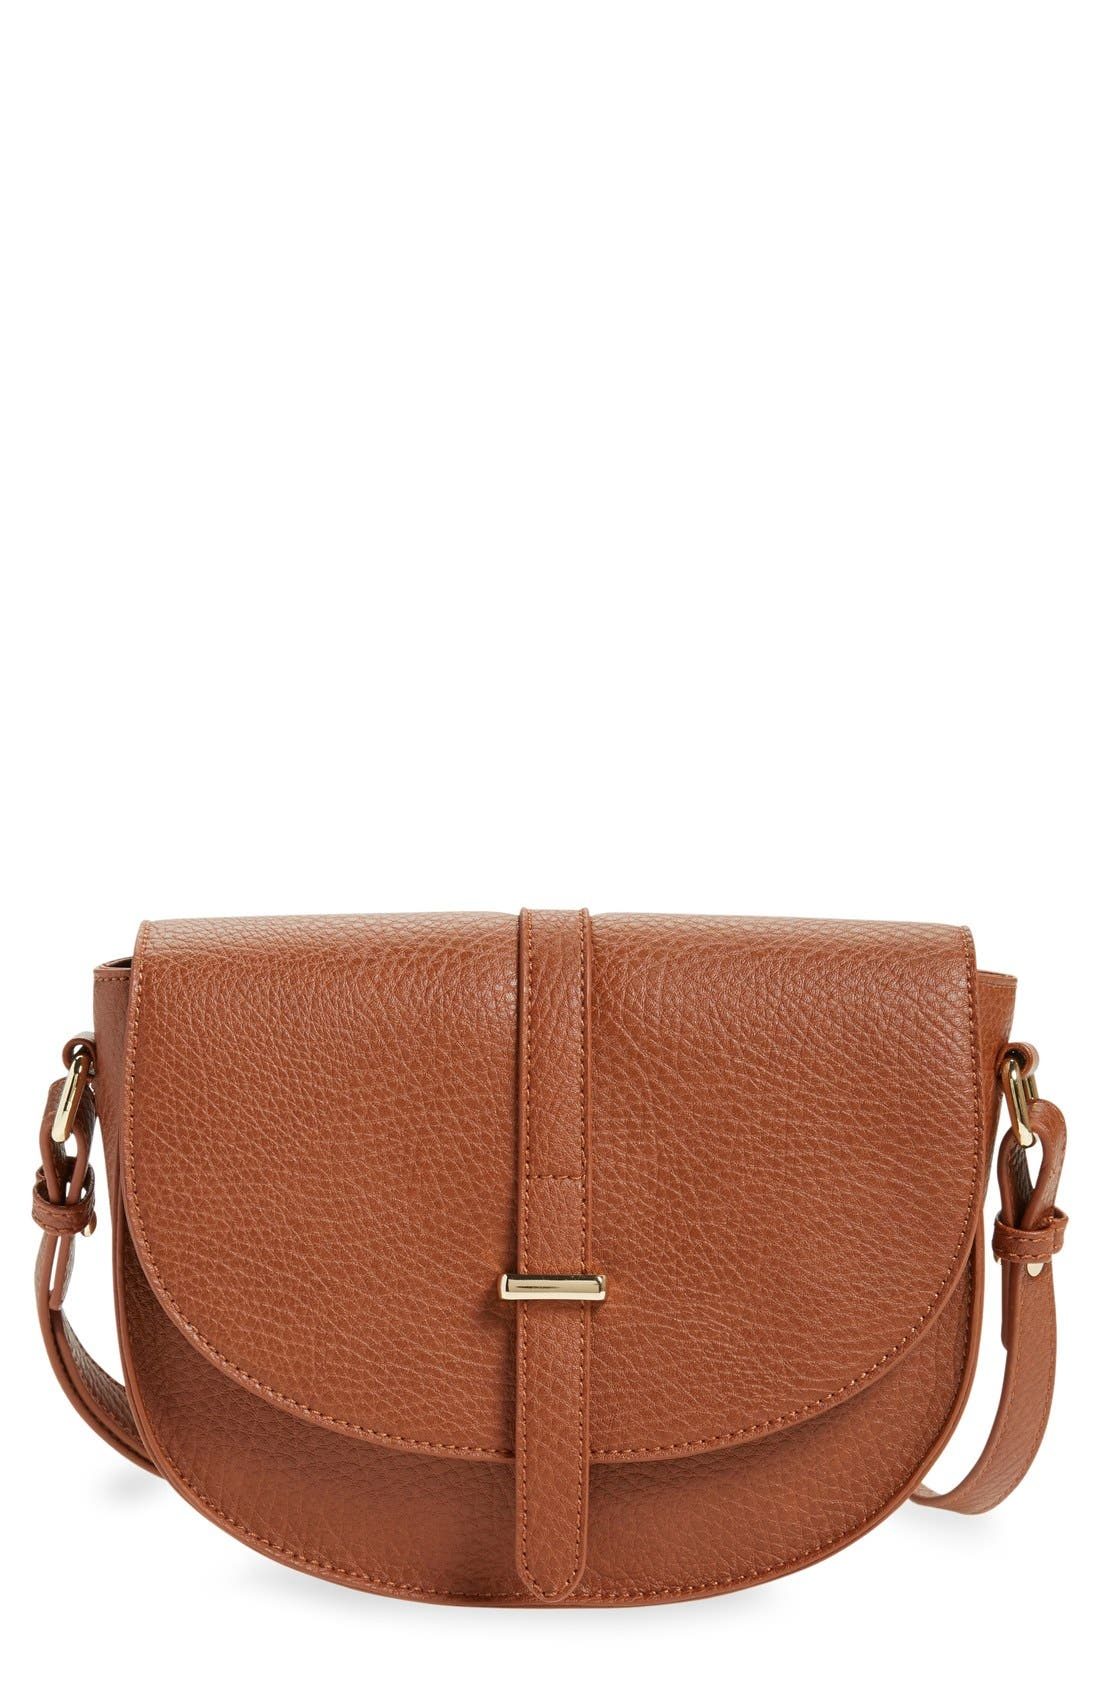 Alternate Image 1 Selected - BP. Faux Leather Saddle Crossbody Bag